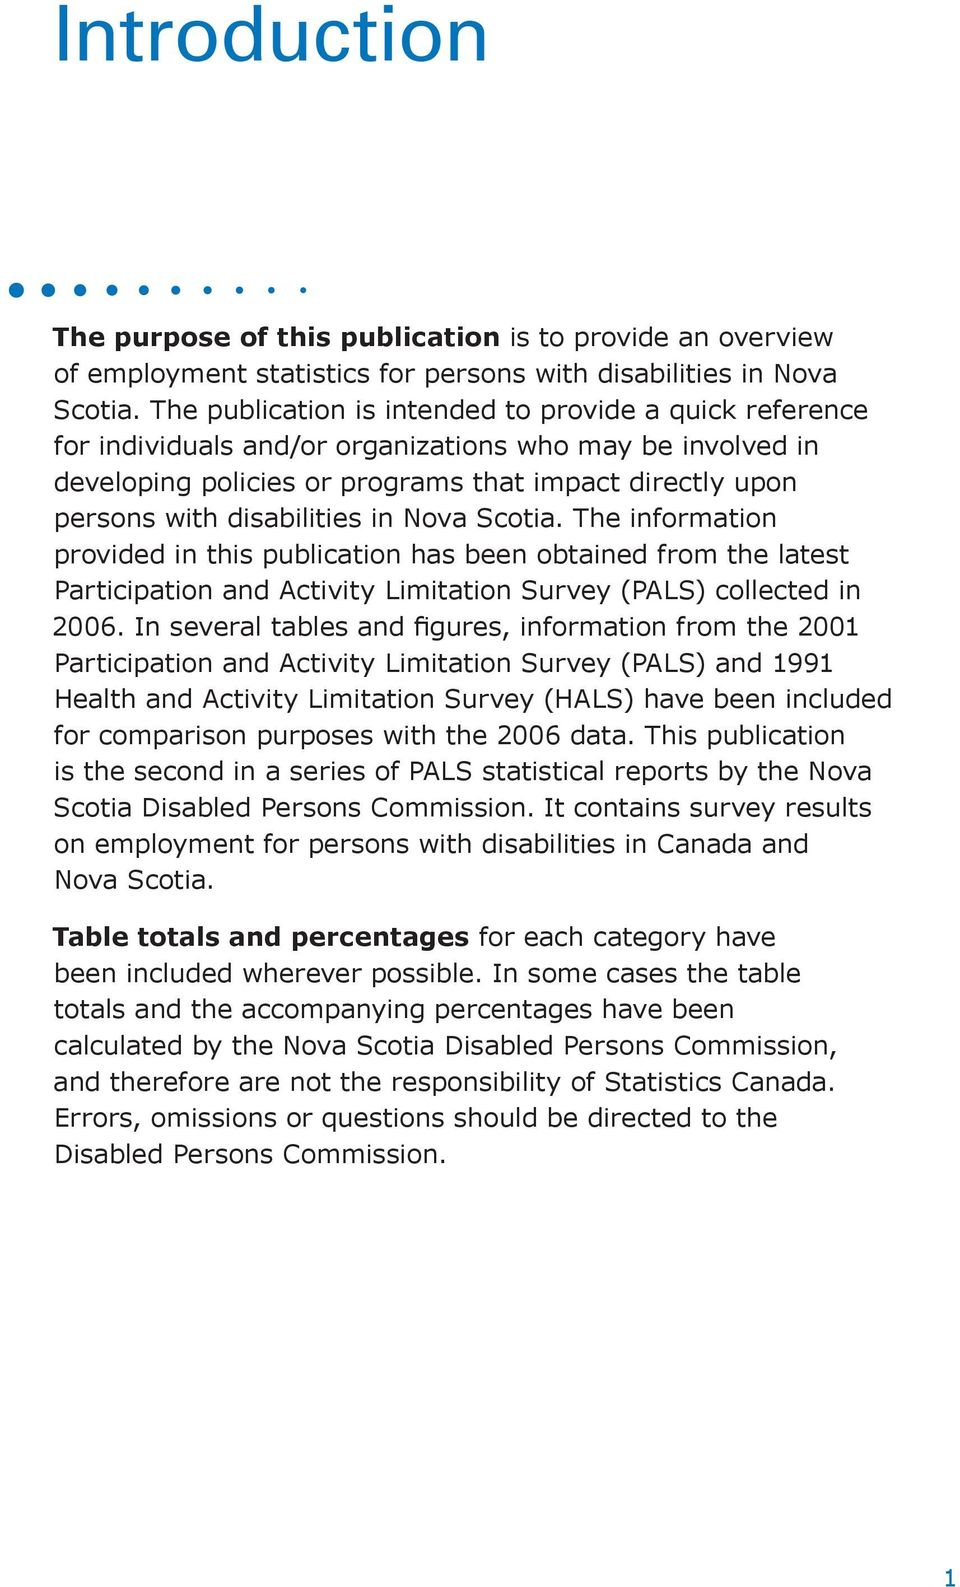 disabilities in Nova Scotia. The information provided in this publication has been obtained from the latest Participation and Activity Limitation Survey (PALS) collected in 2006.